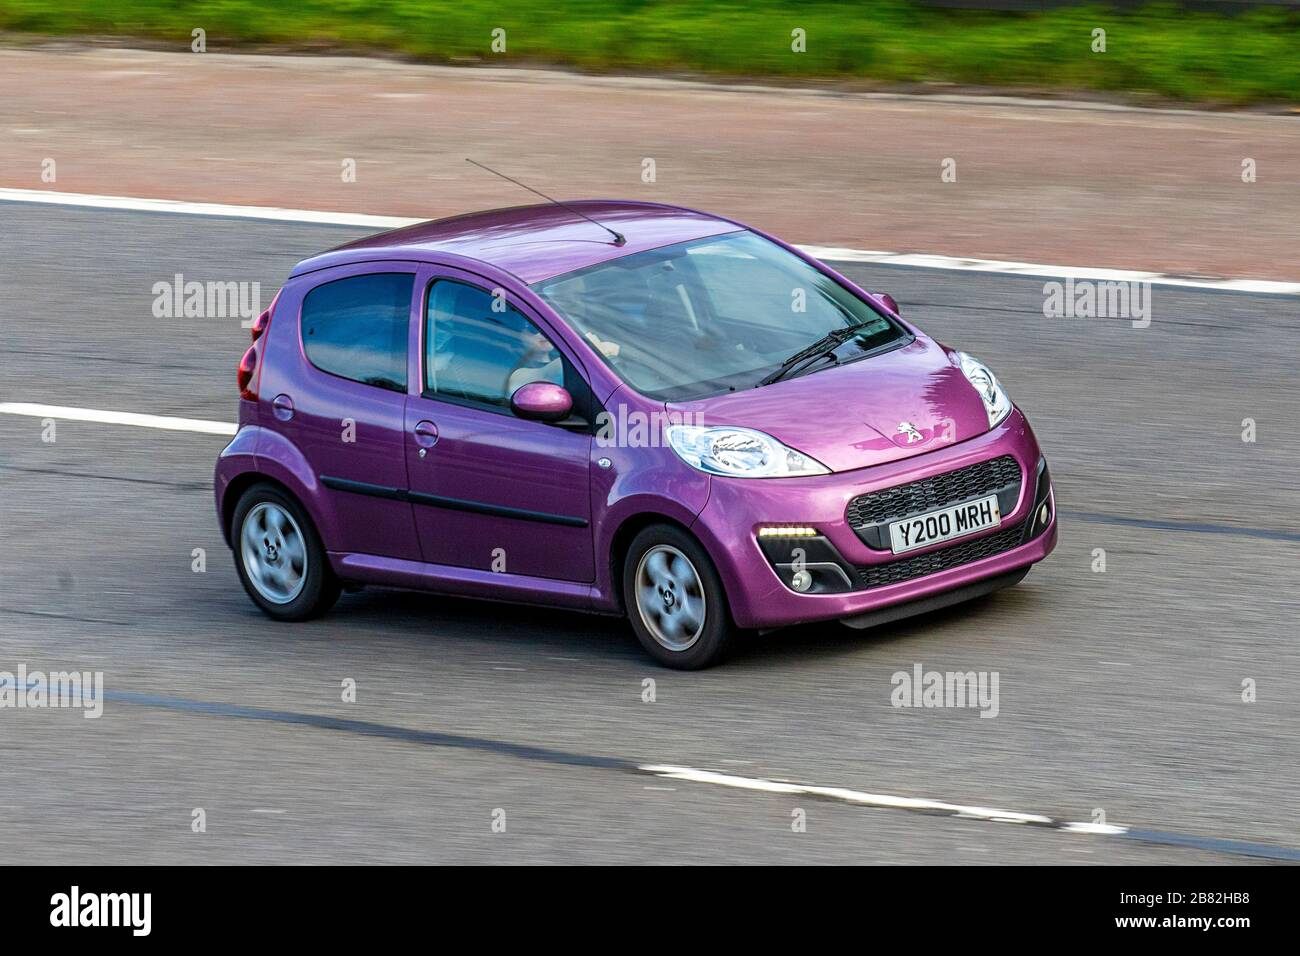 Page 2 Purple Car High Resolution Stock Photography And Images Alamy